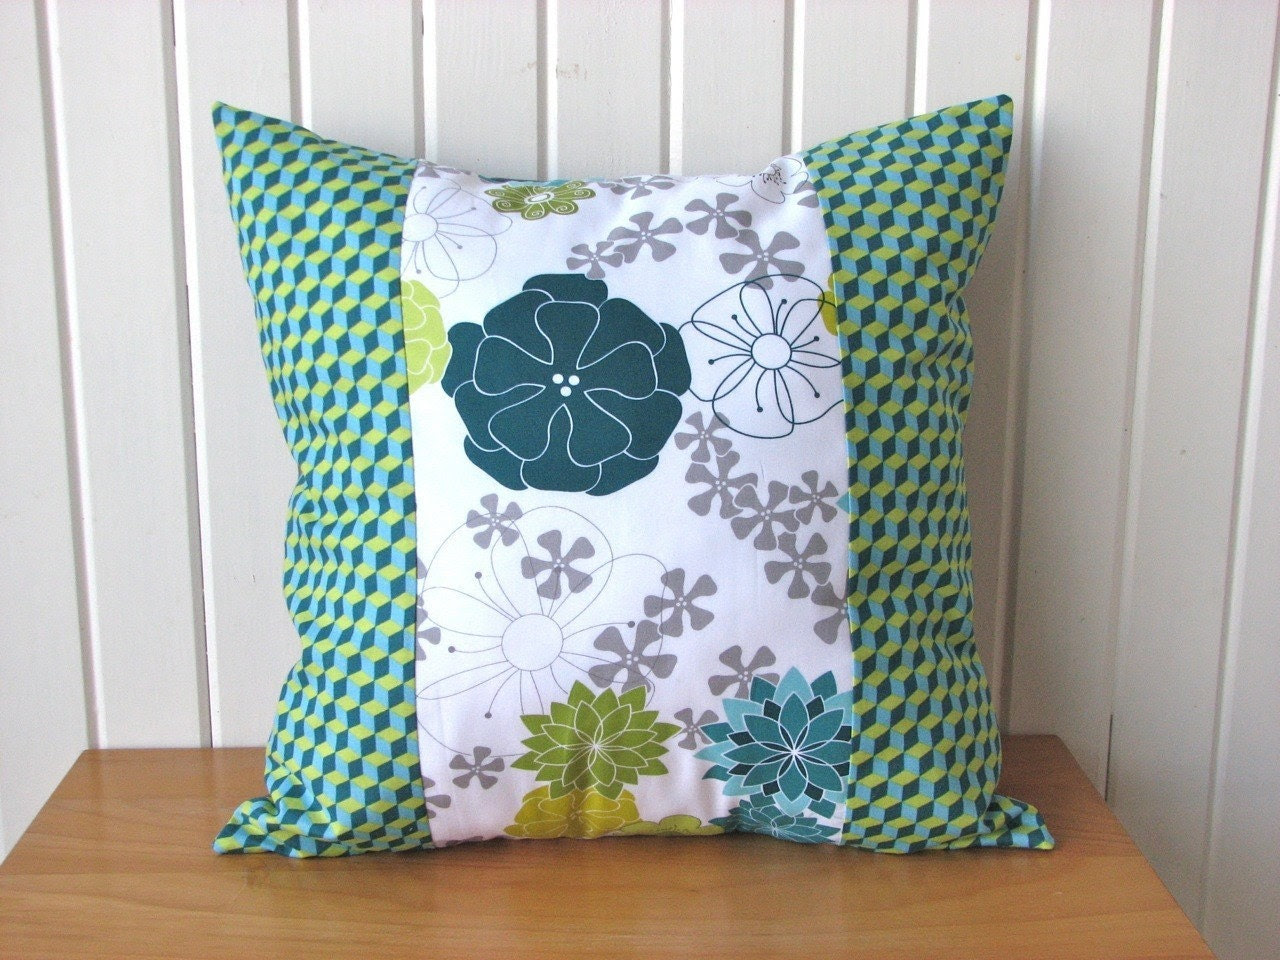 Pillow Cover in Aromatherapy in Seafoam - 16x16